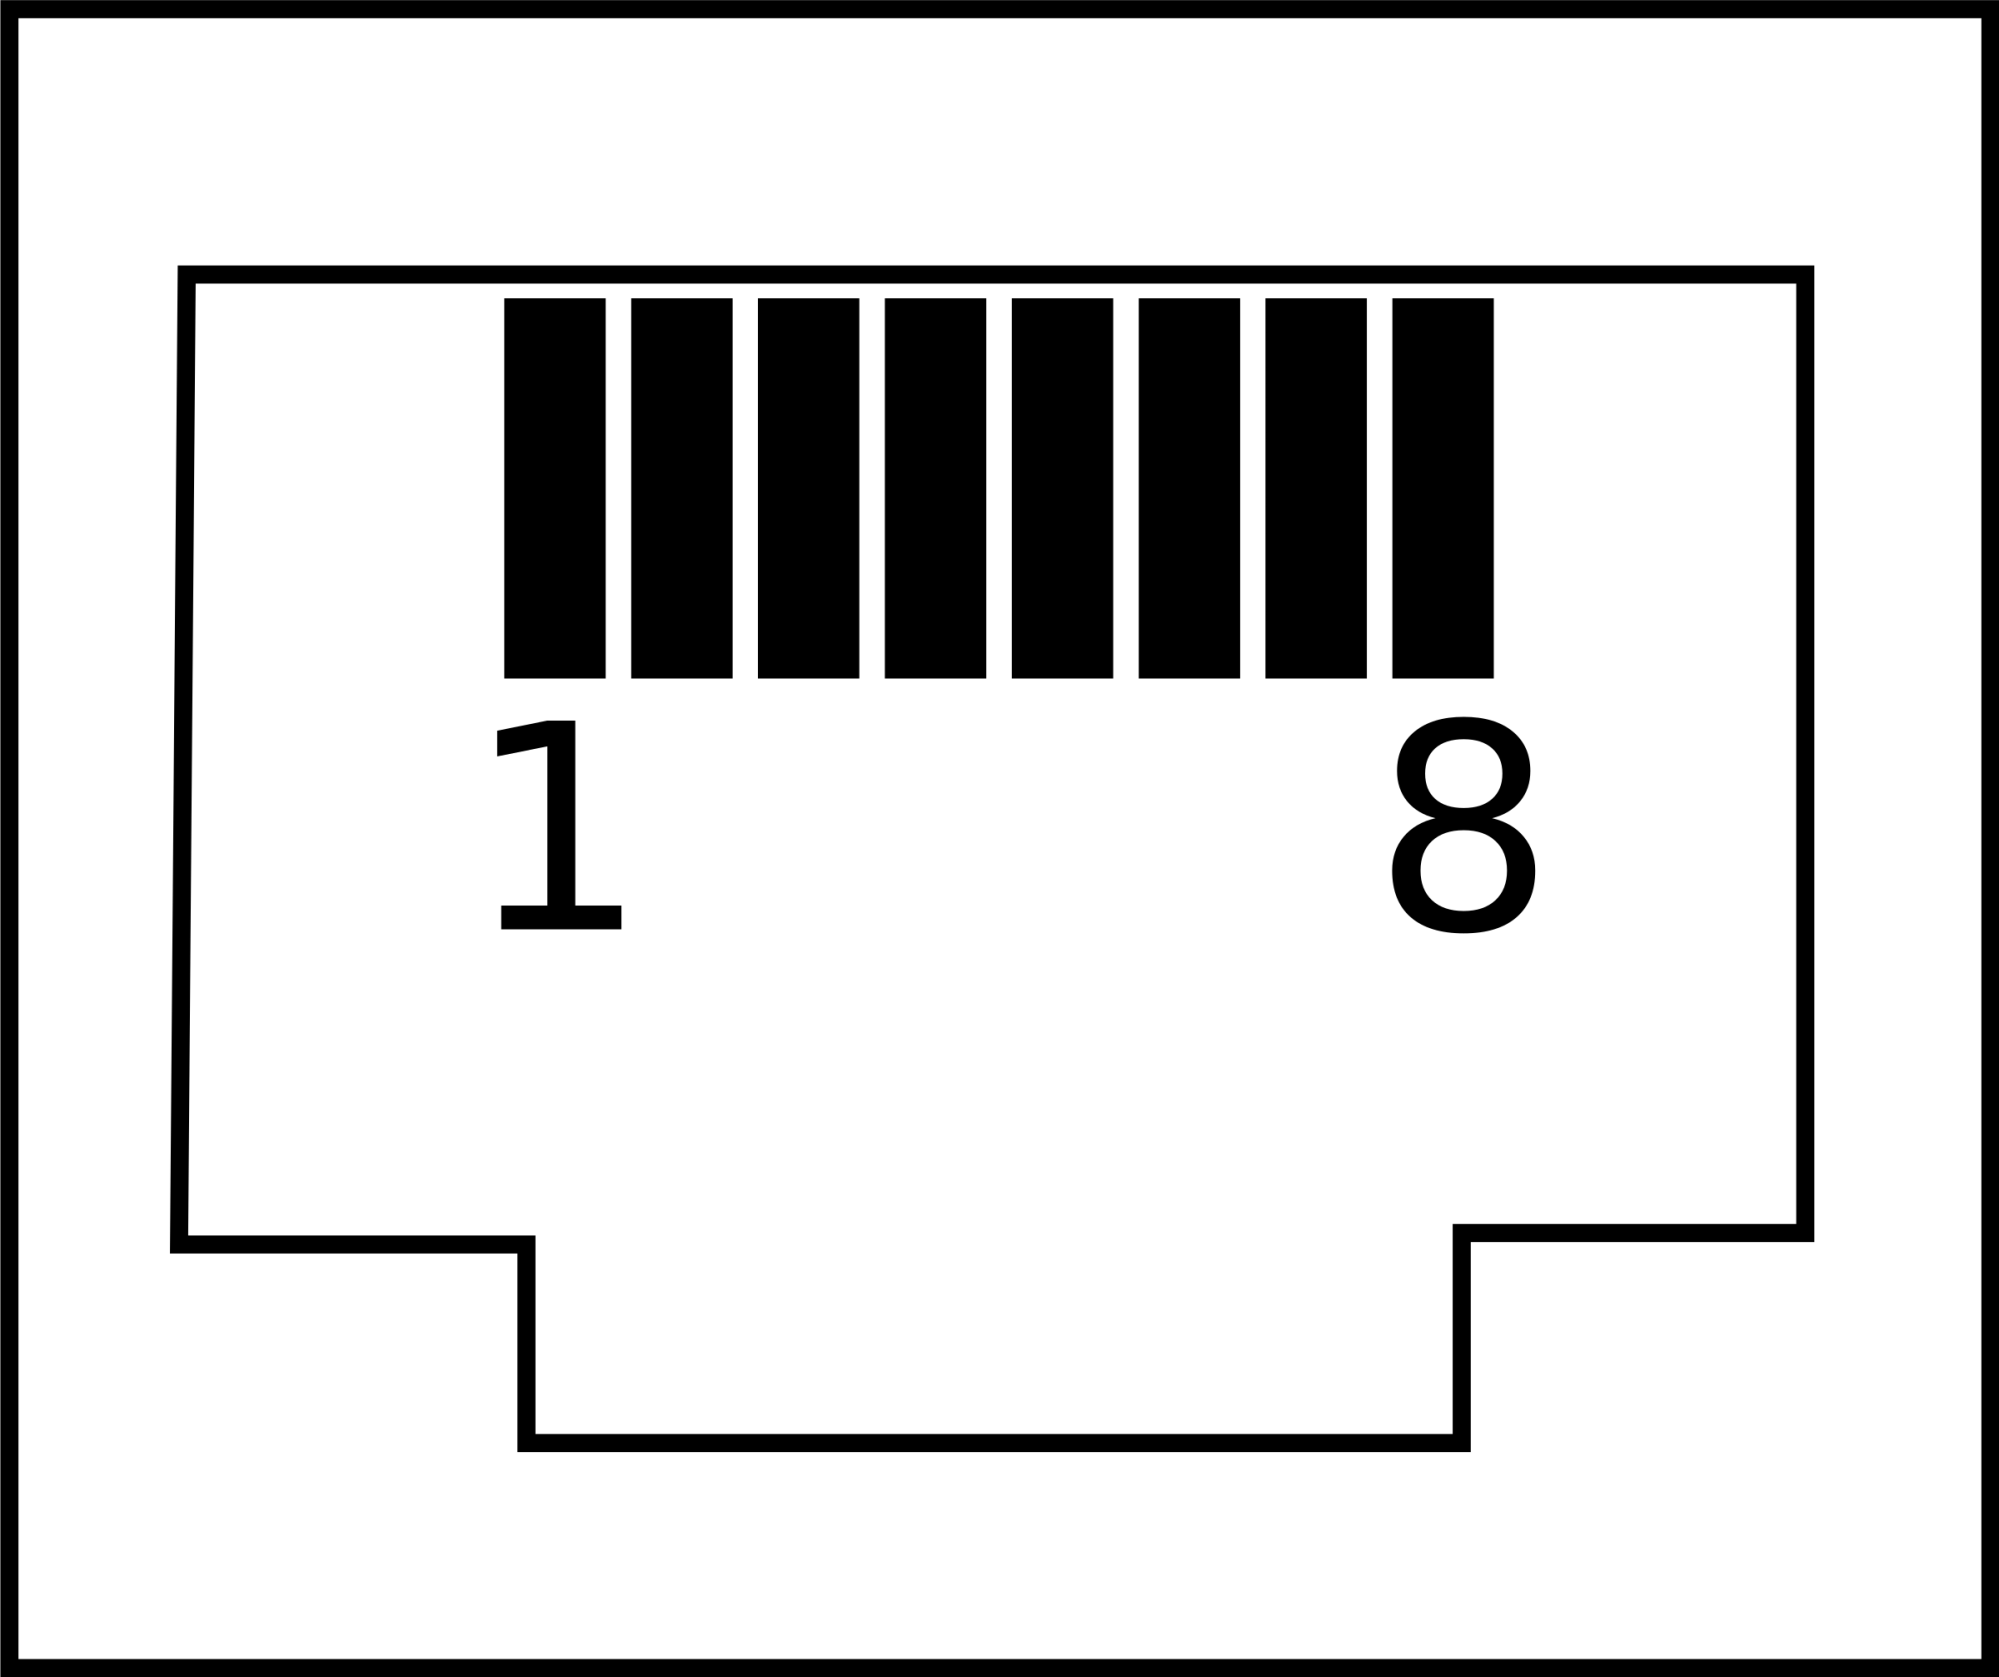 hight resolution of scadapack serial port pin out diagram rj45 scadapack